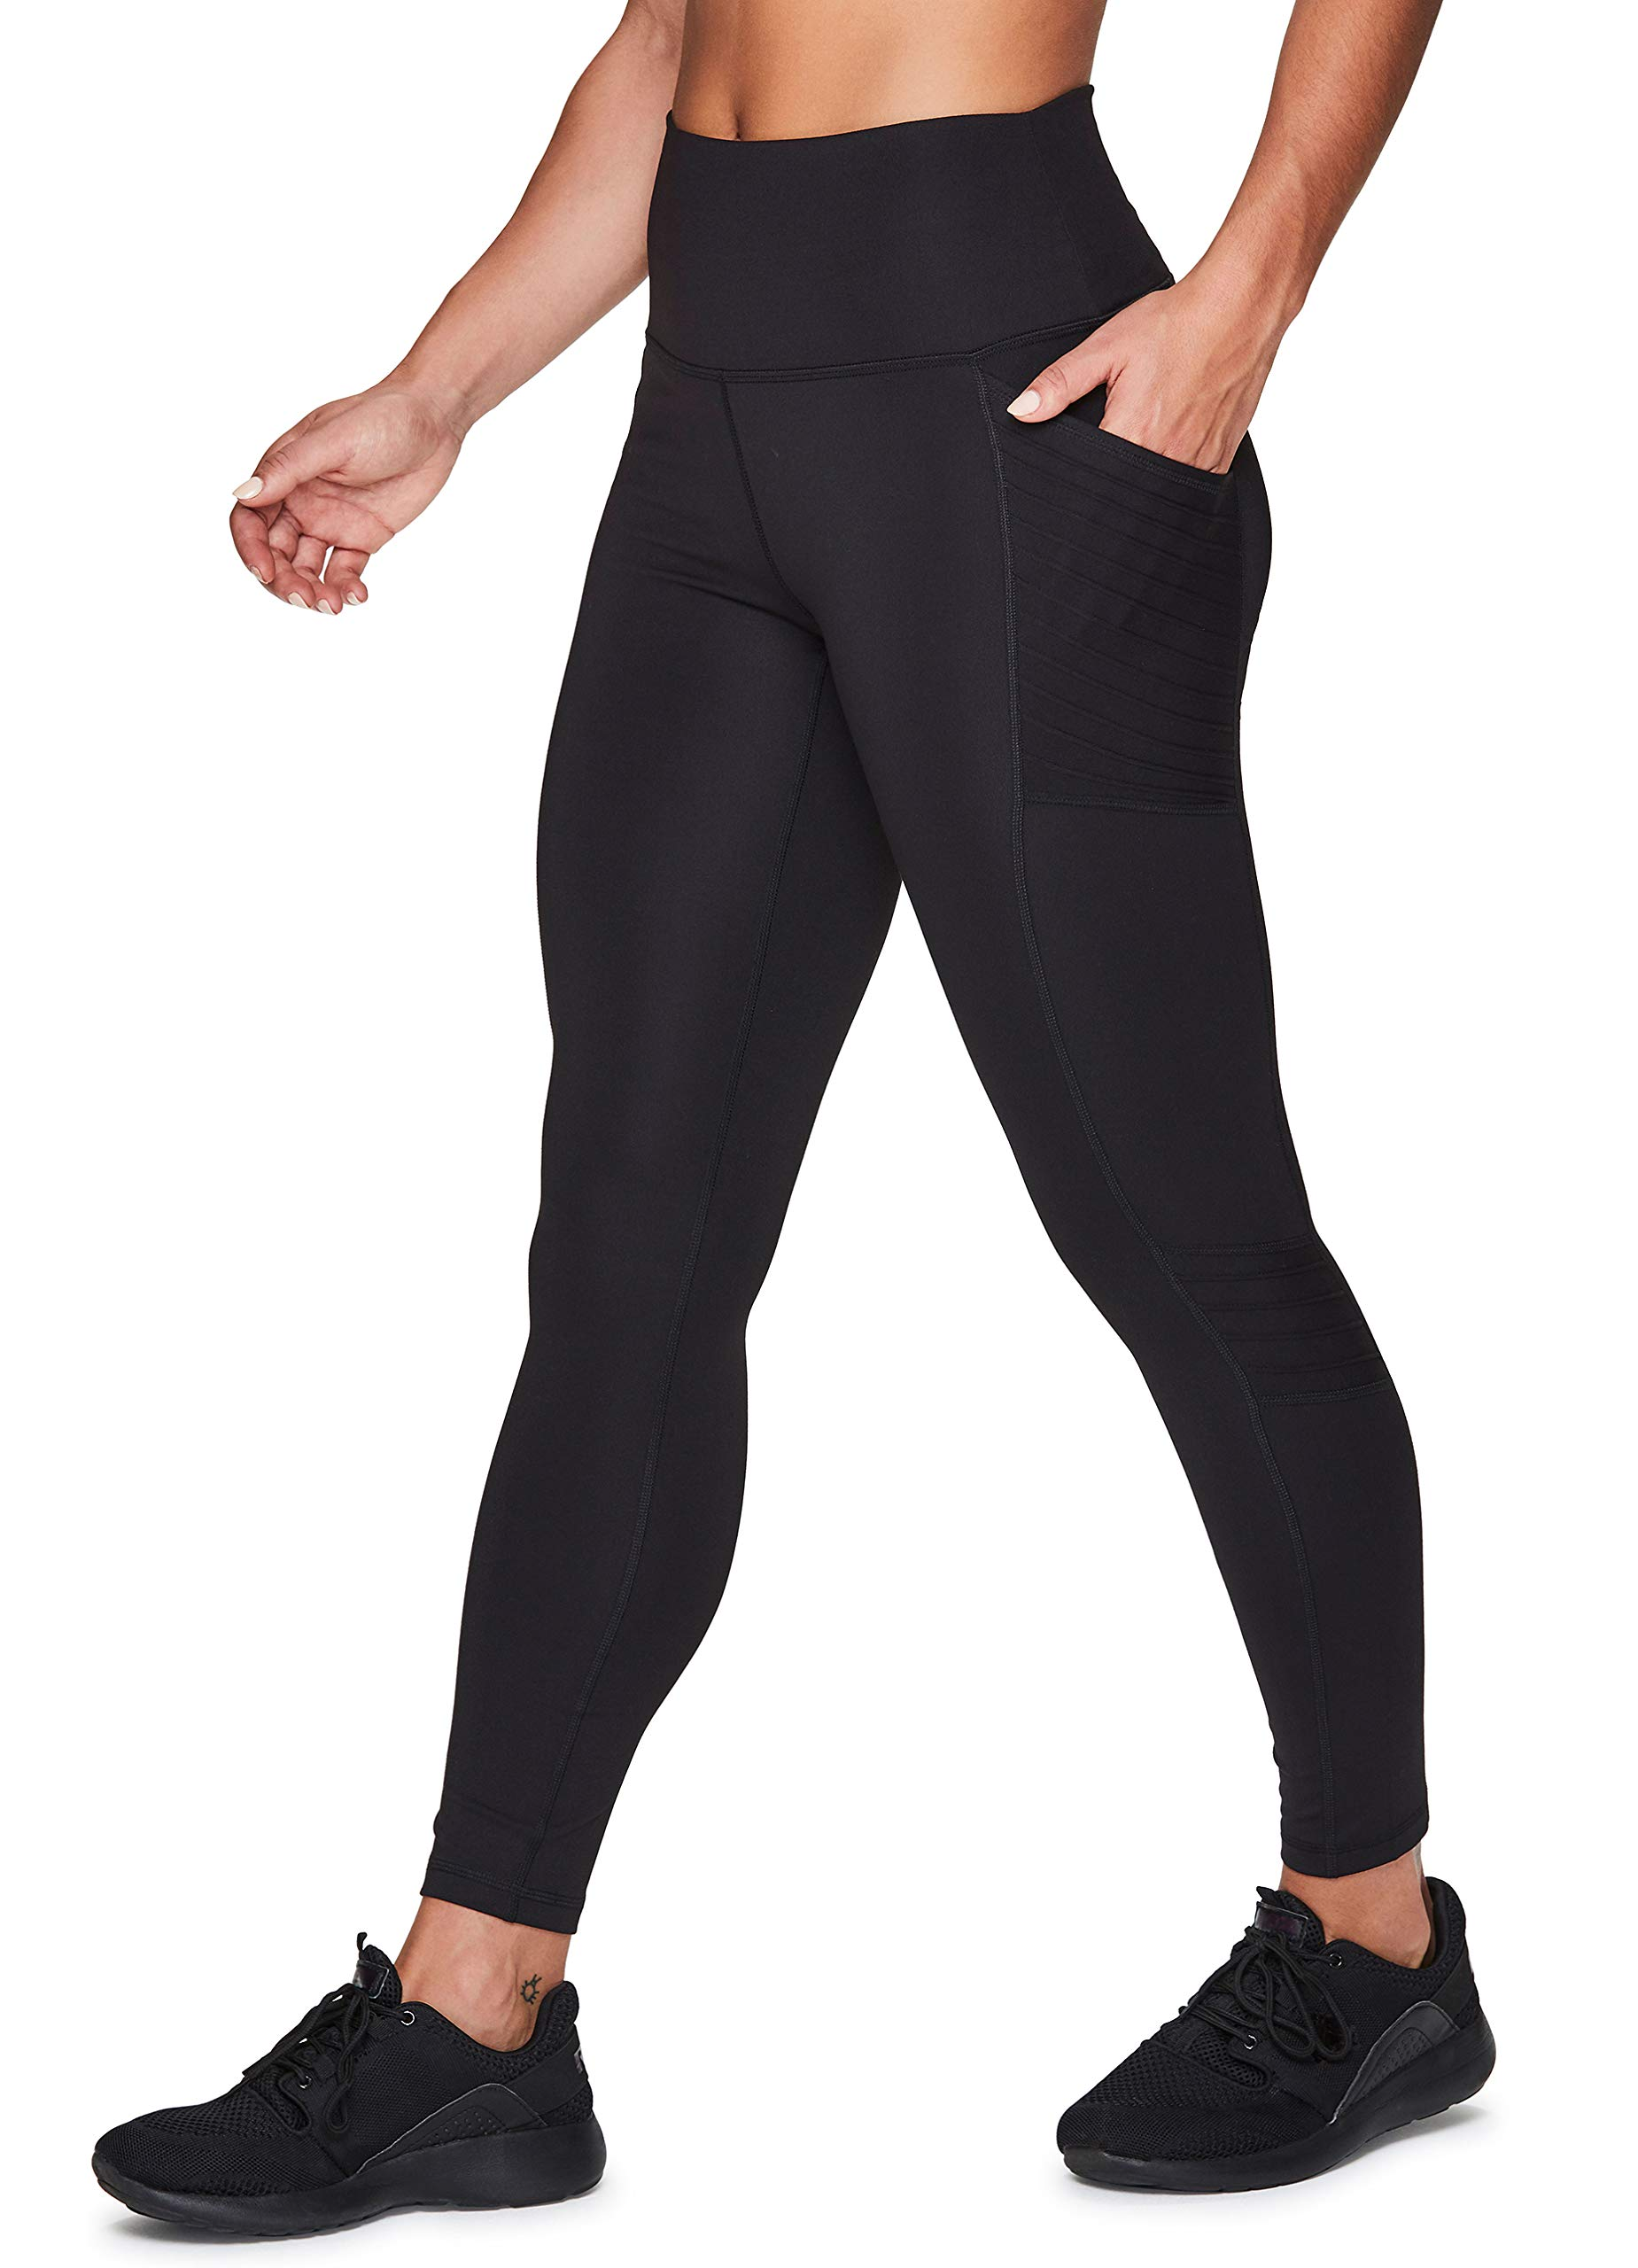 RBX Active Women's Fashion Super Soft Peached Full Length Solid Workout Running Yoga Leggings with Pockets